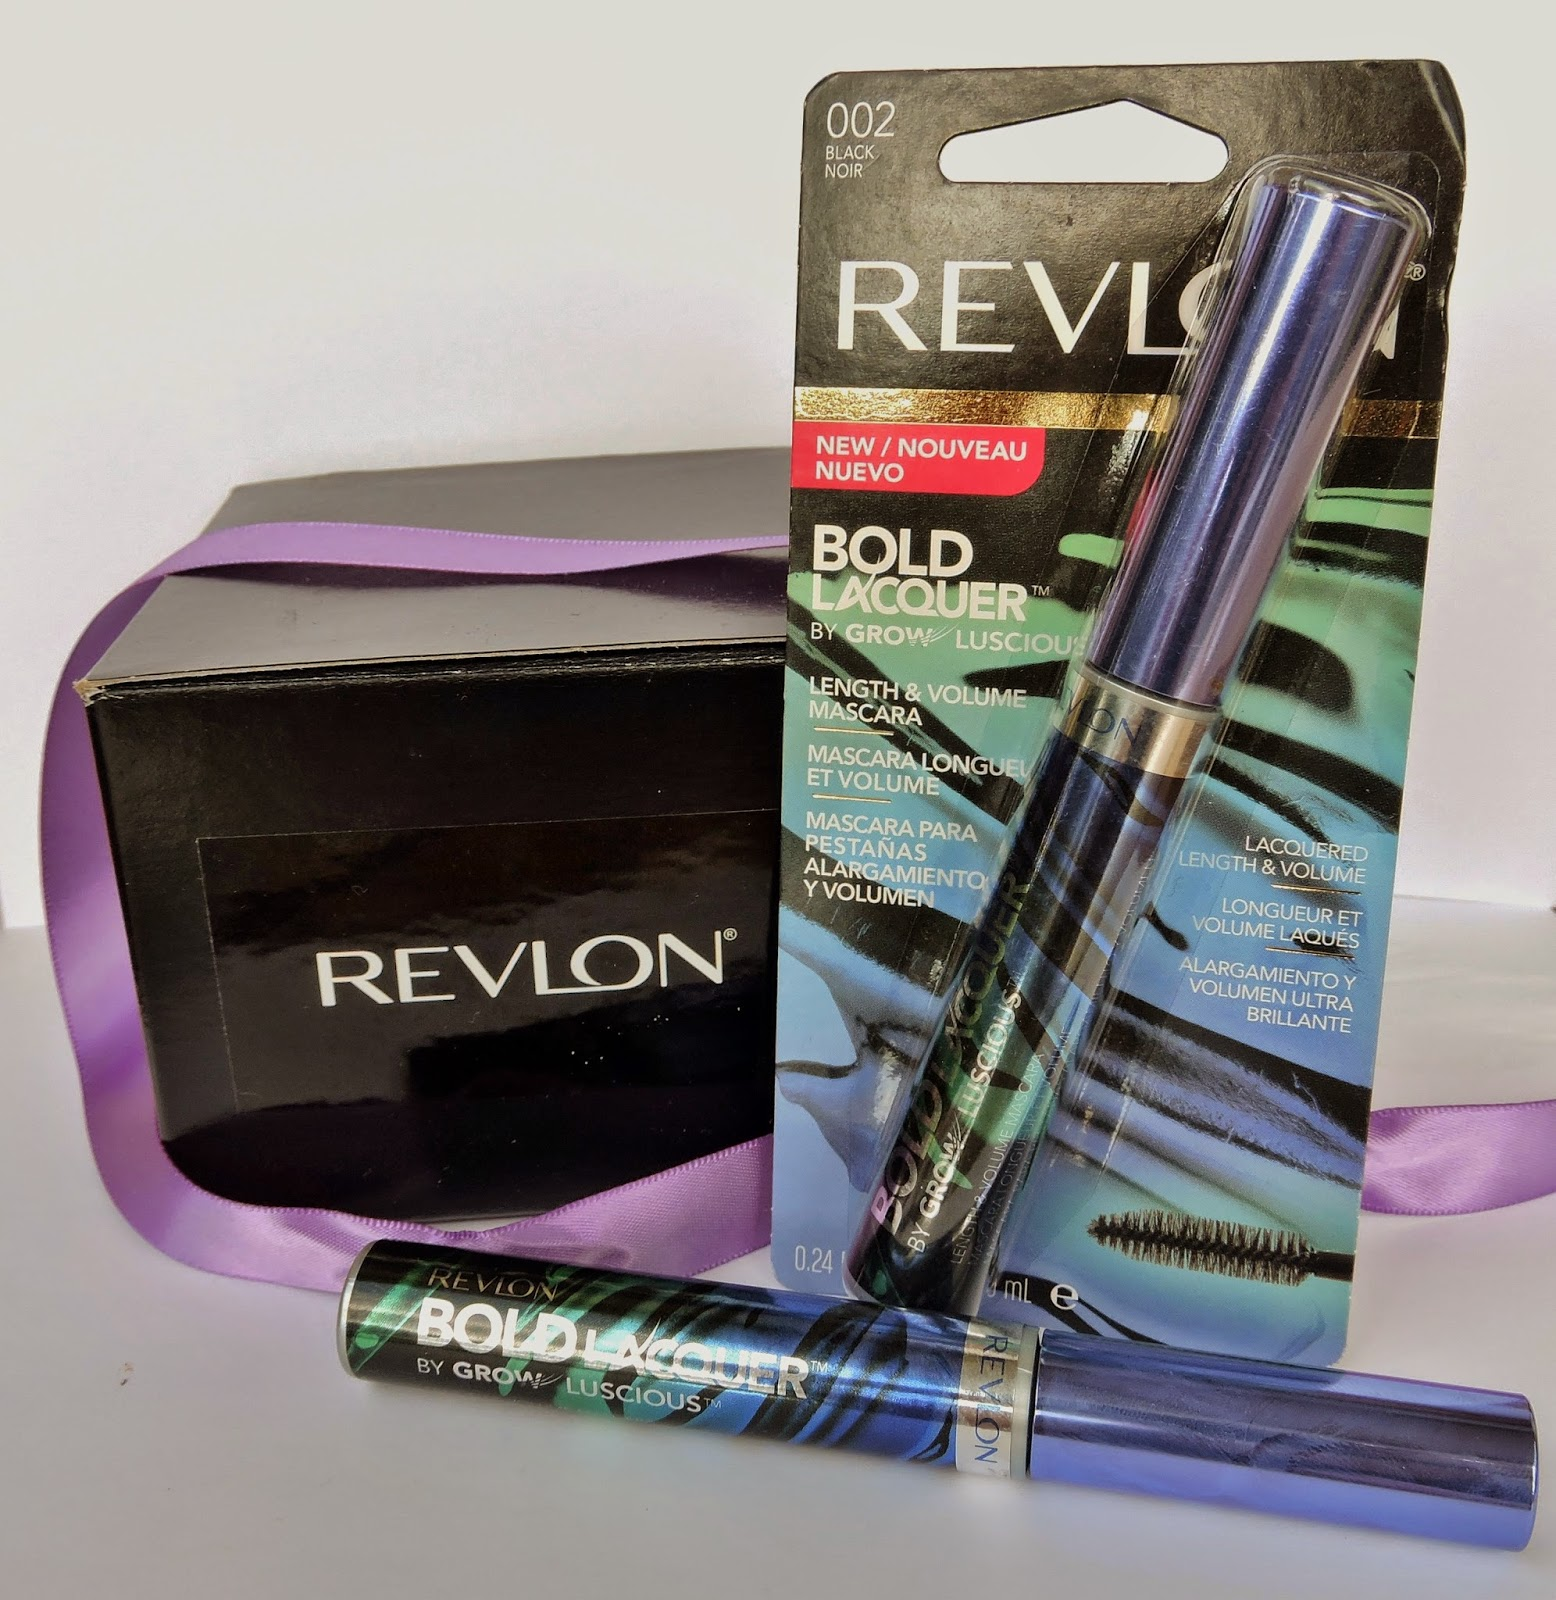 Revlon Bold Lacquer Mascara Review, makeup, beauty, melani.ps, the purple scarf, toronto, ontario, canada